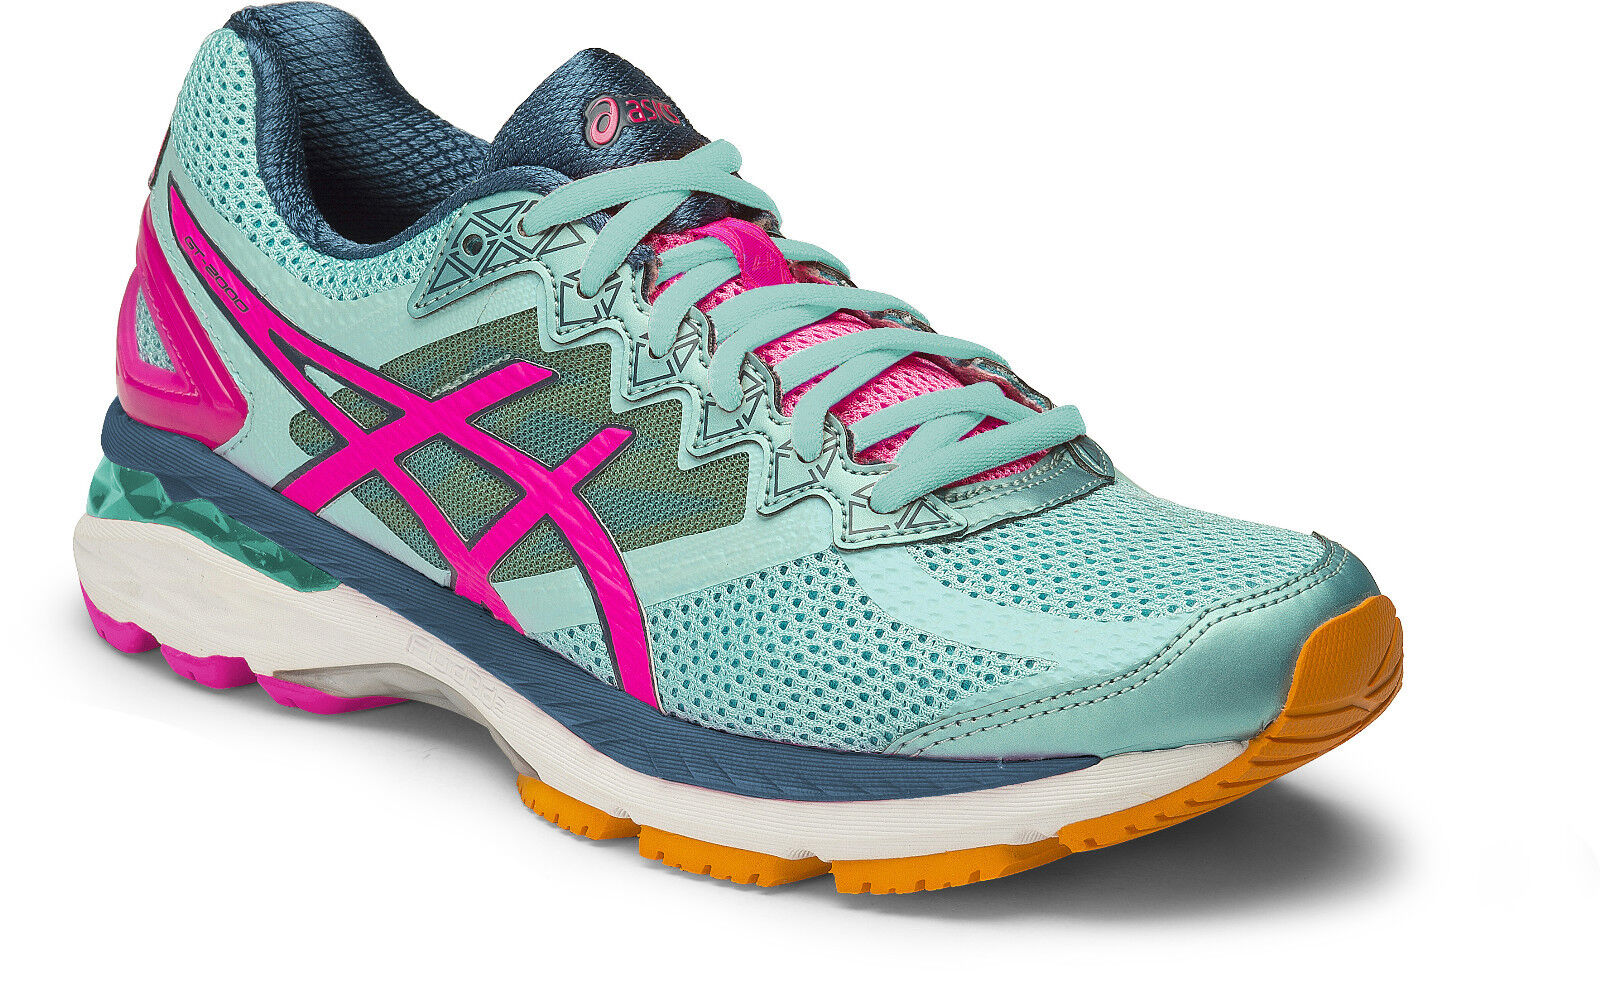 Asics GT 2000 4 Donna Running Shoes (2A) (4034) + Free Aus Delivery!